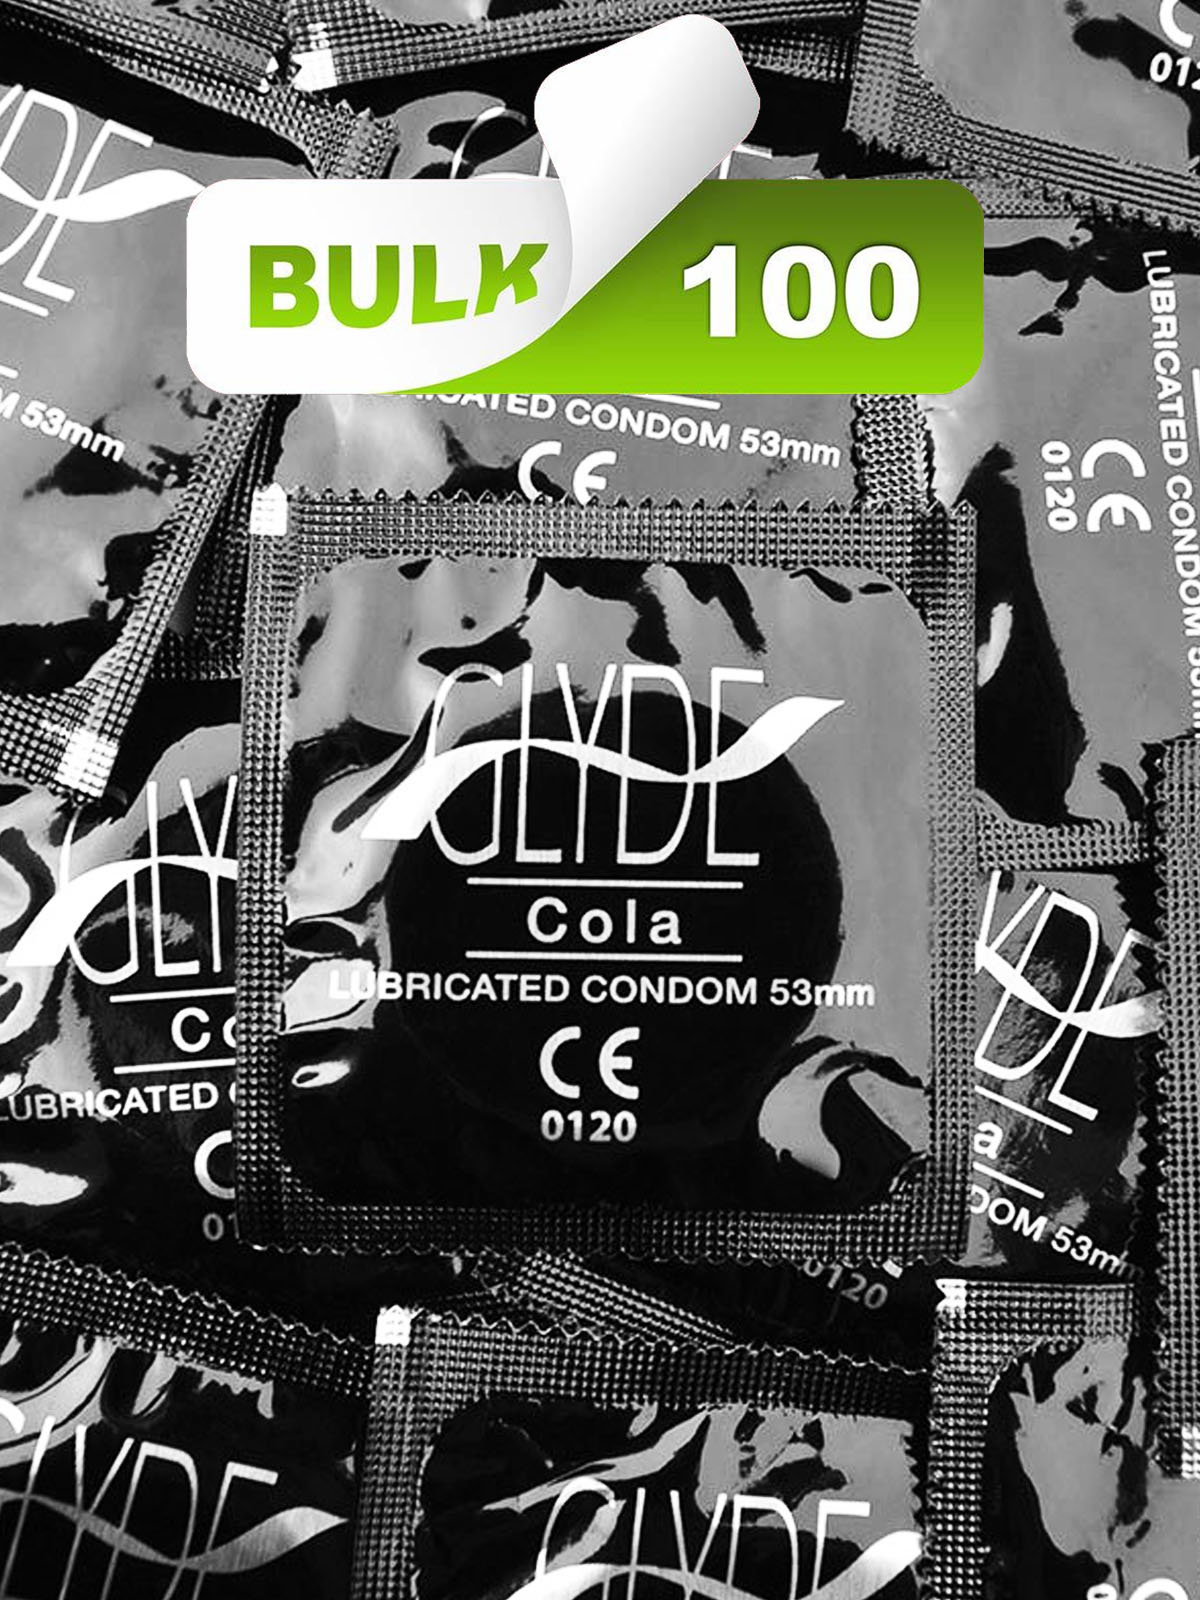 Glyde Black/Cola Condoms (100 Bulk) - Buy Bulk Condoms Online